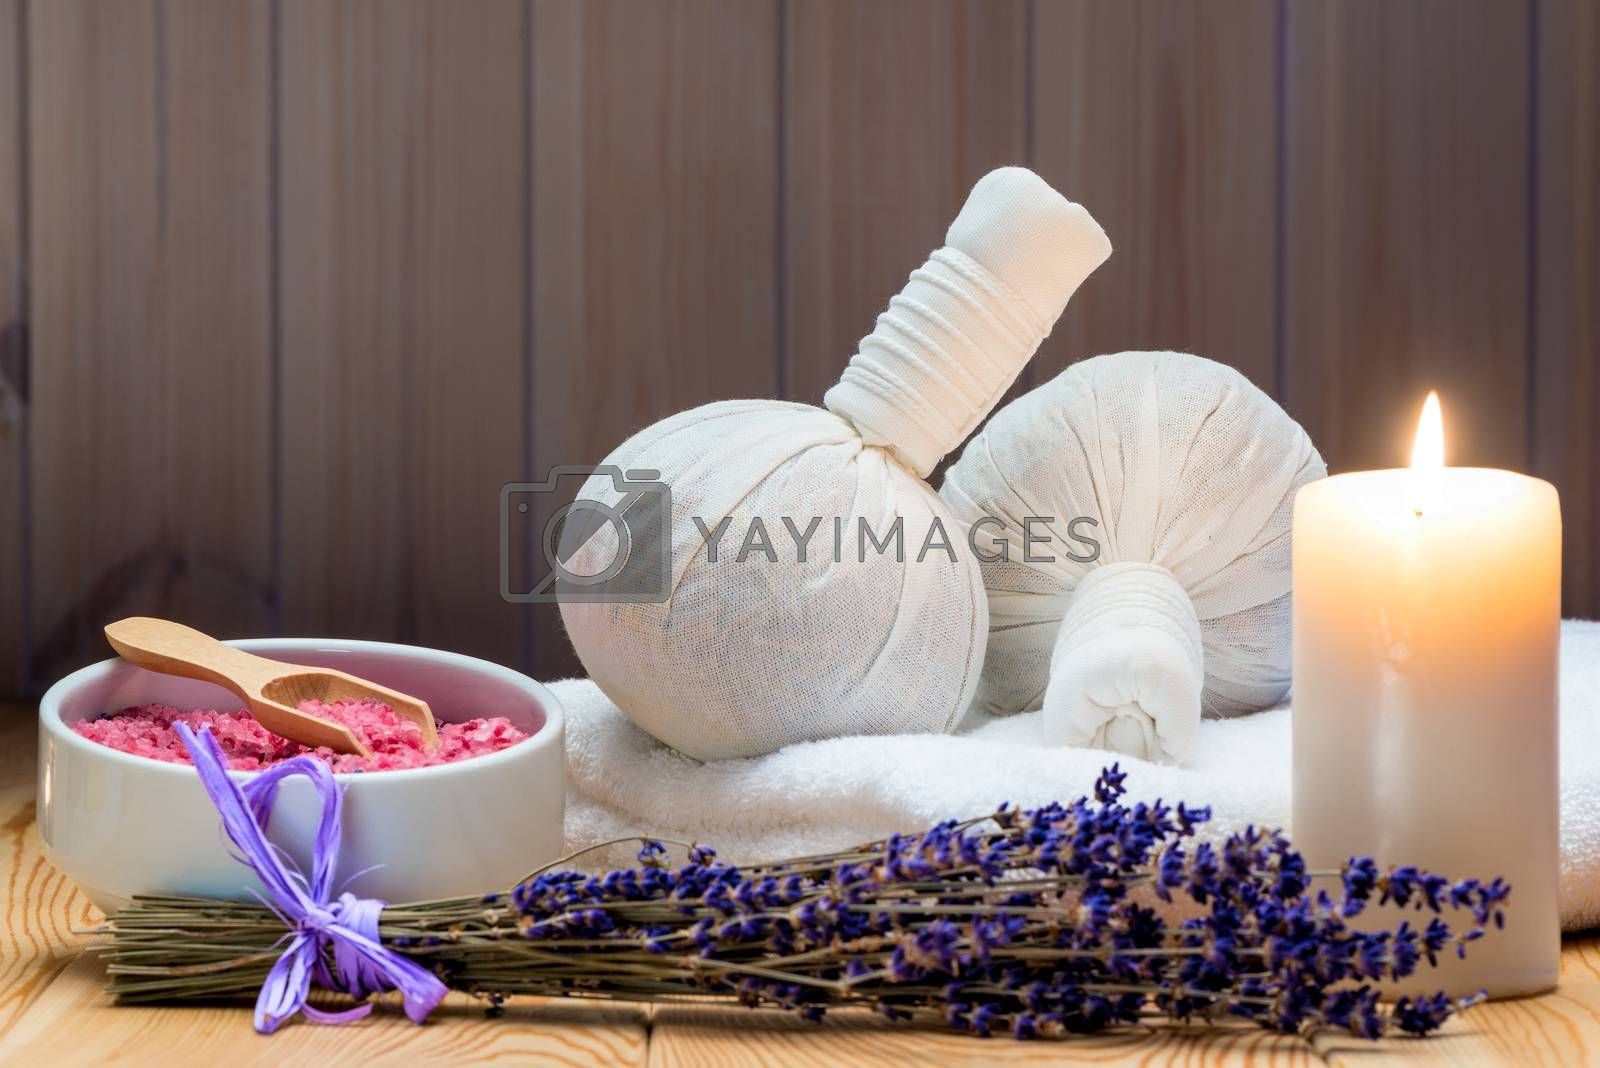 herbal bags with natural lavender and sea salt with a burning ca by Labunskiy K.